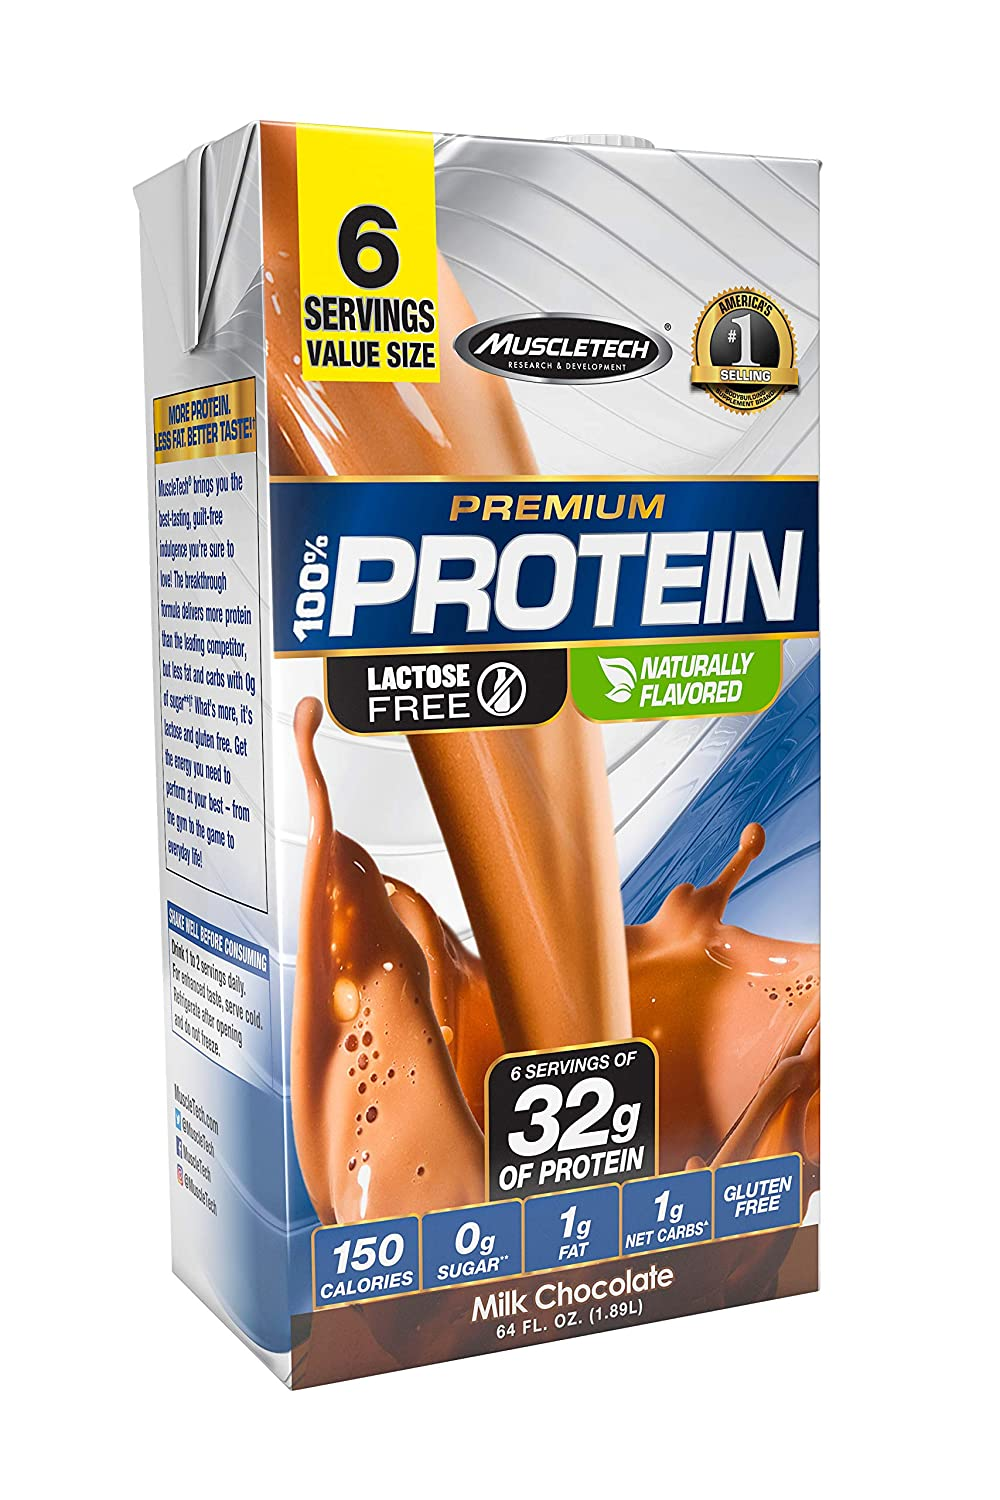 MuscleTech High Protein Shake, 32g Protein, Ready to Drink, Lactose Free  Protein, No Sugar, Low Carbs,